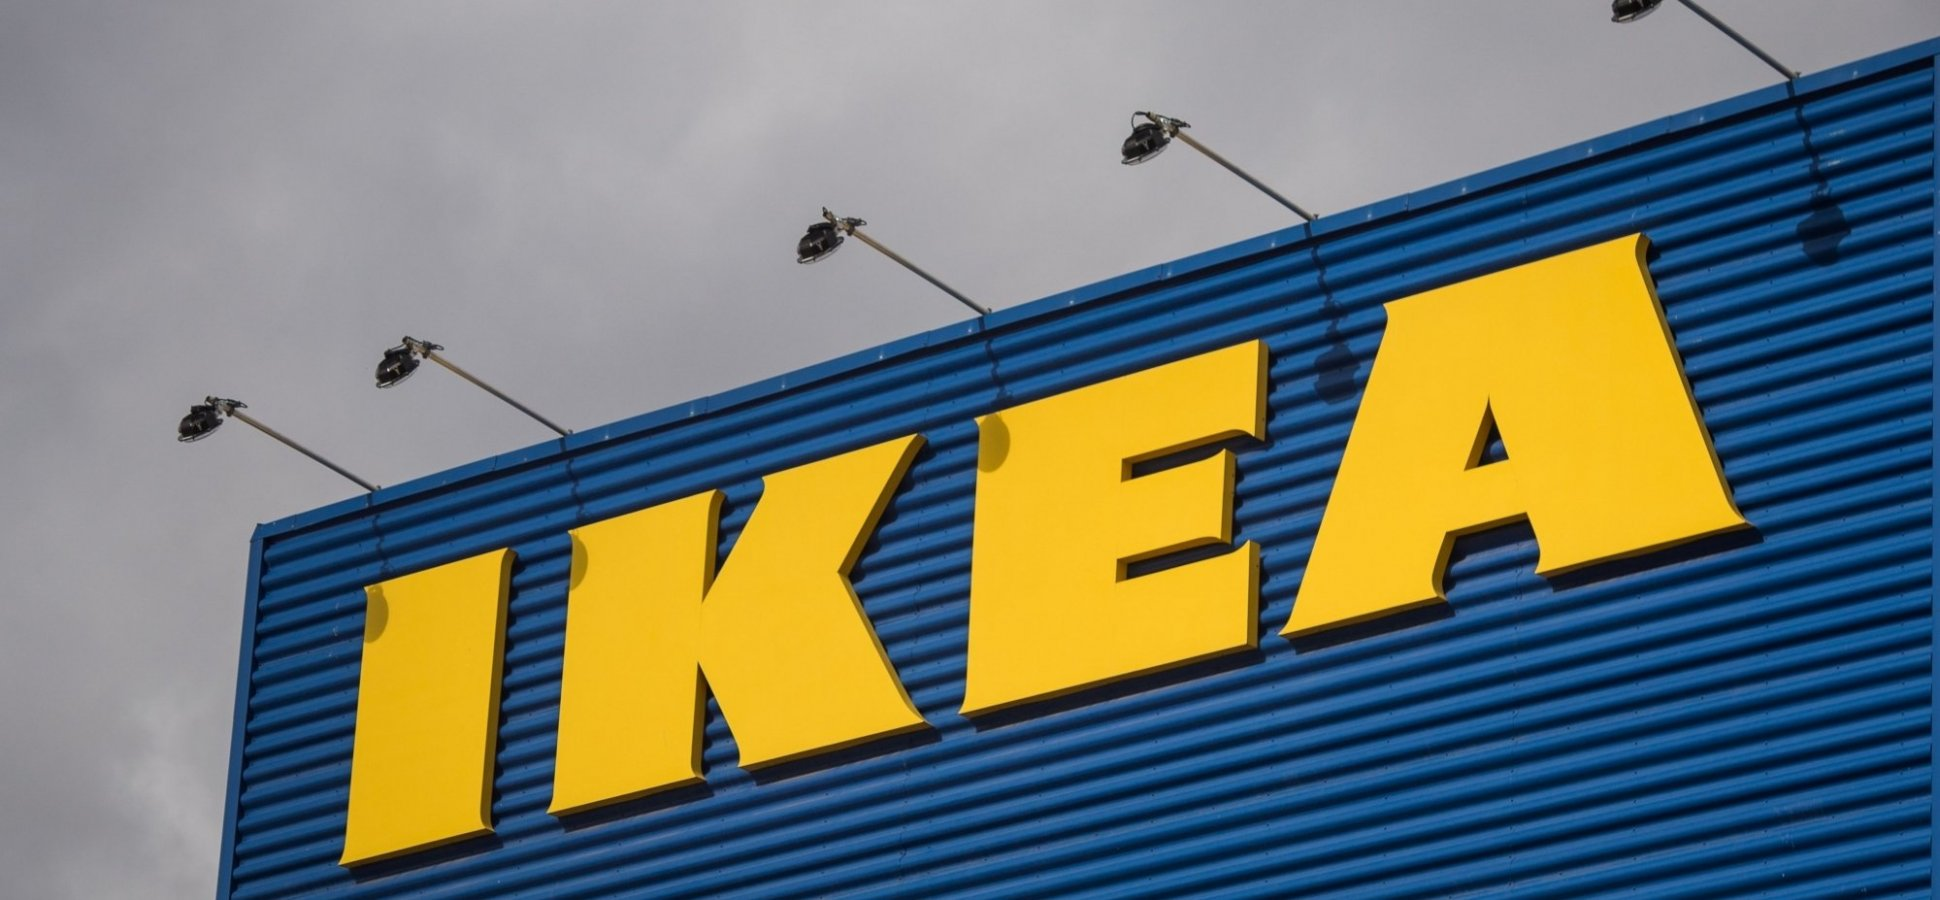 Ikea is Making Big Changesing Almost Everything, and Its CEO Just Revealed the Whole Plan on LinkedIn